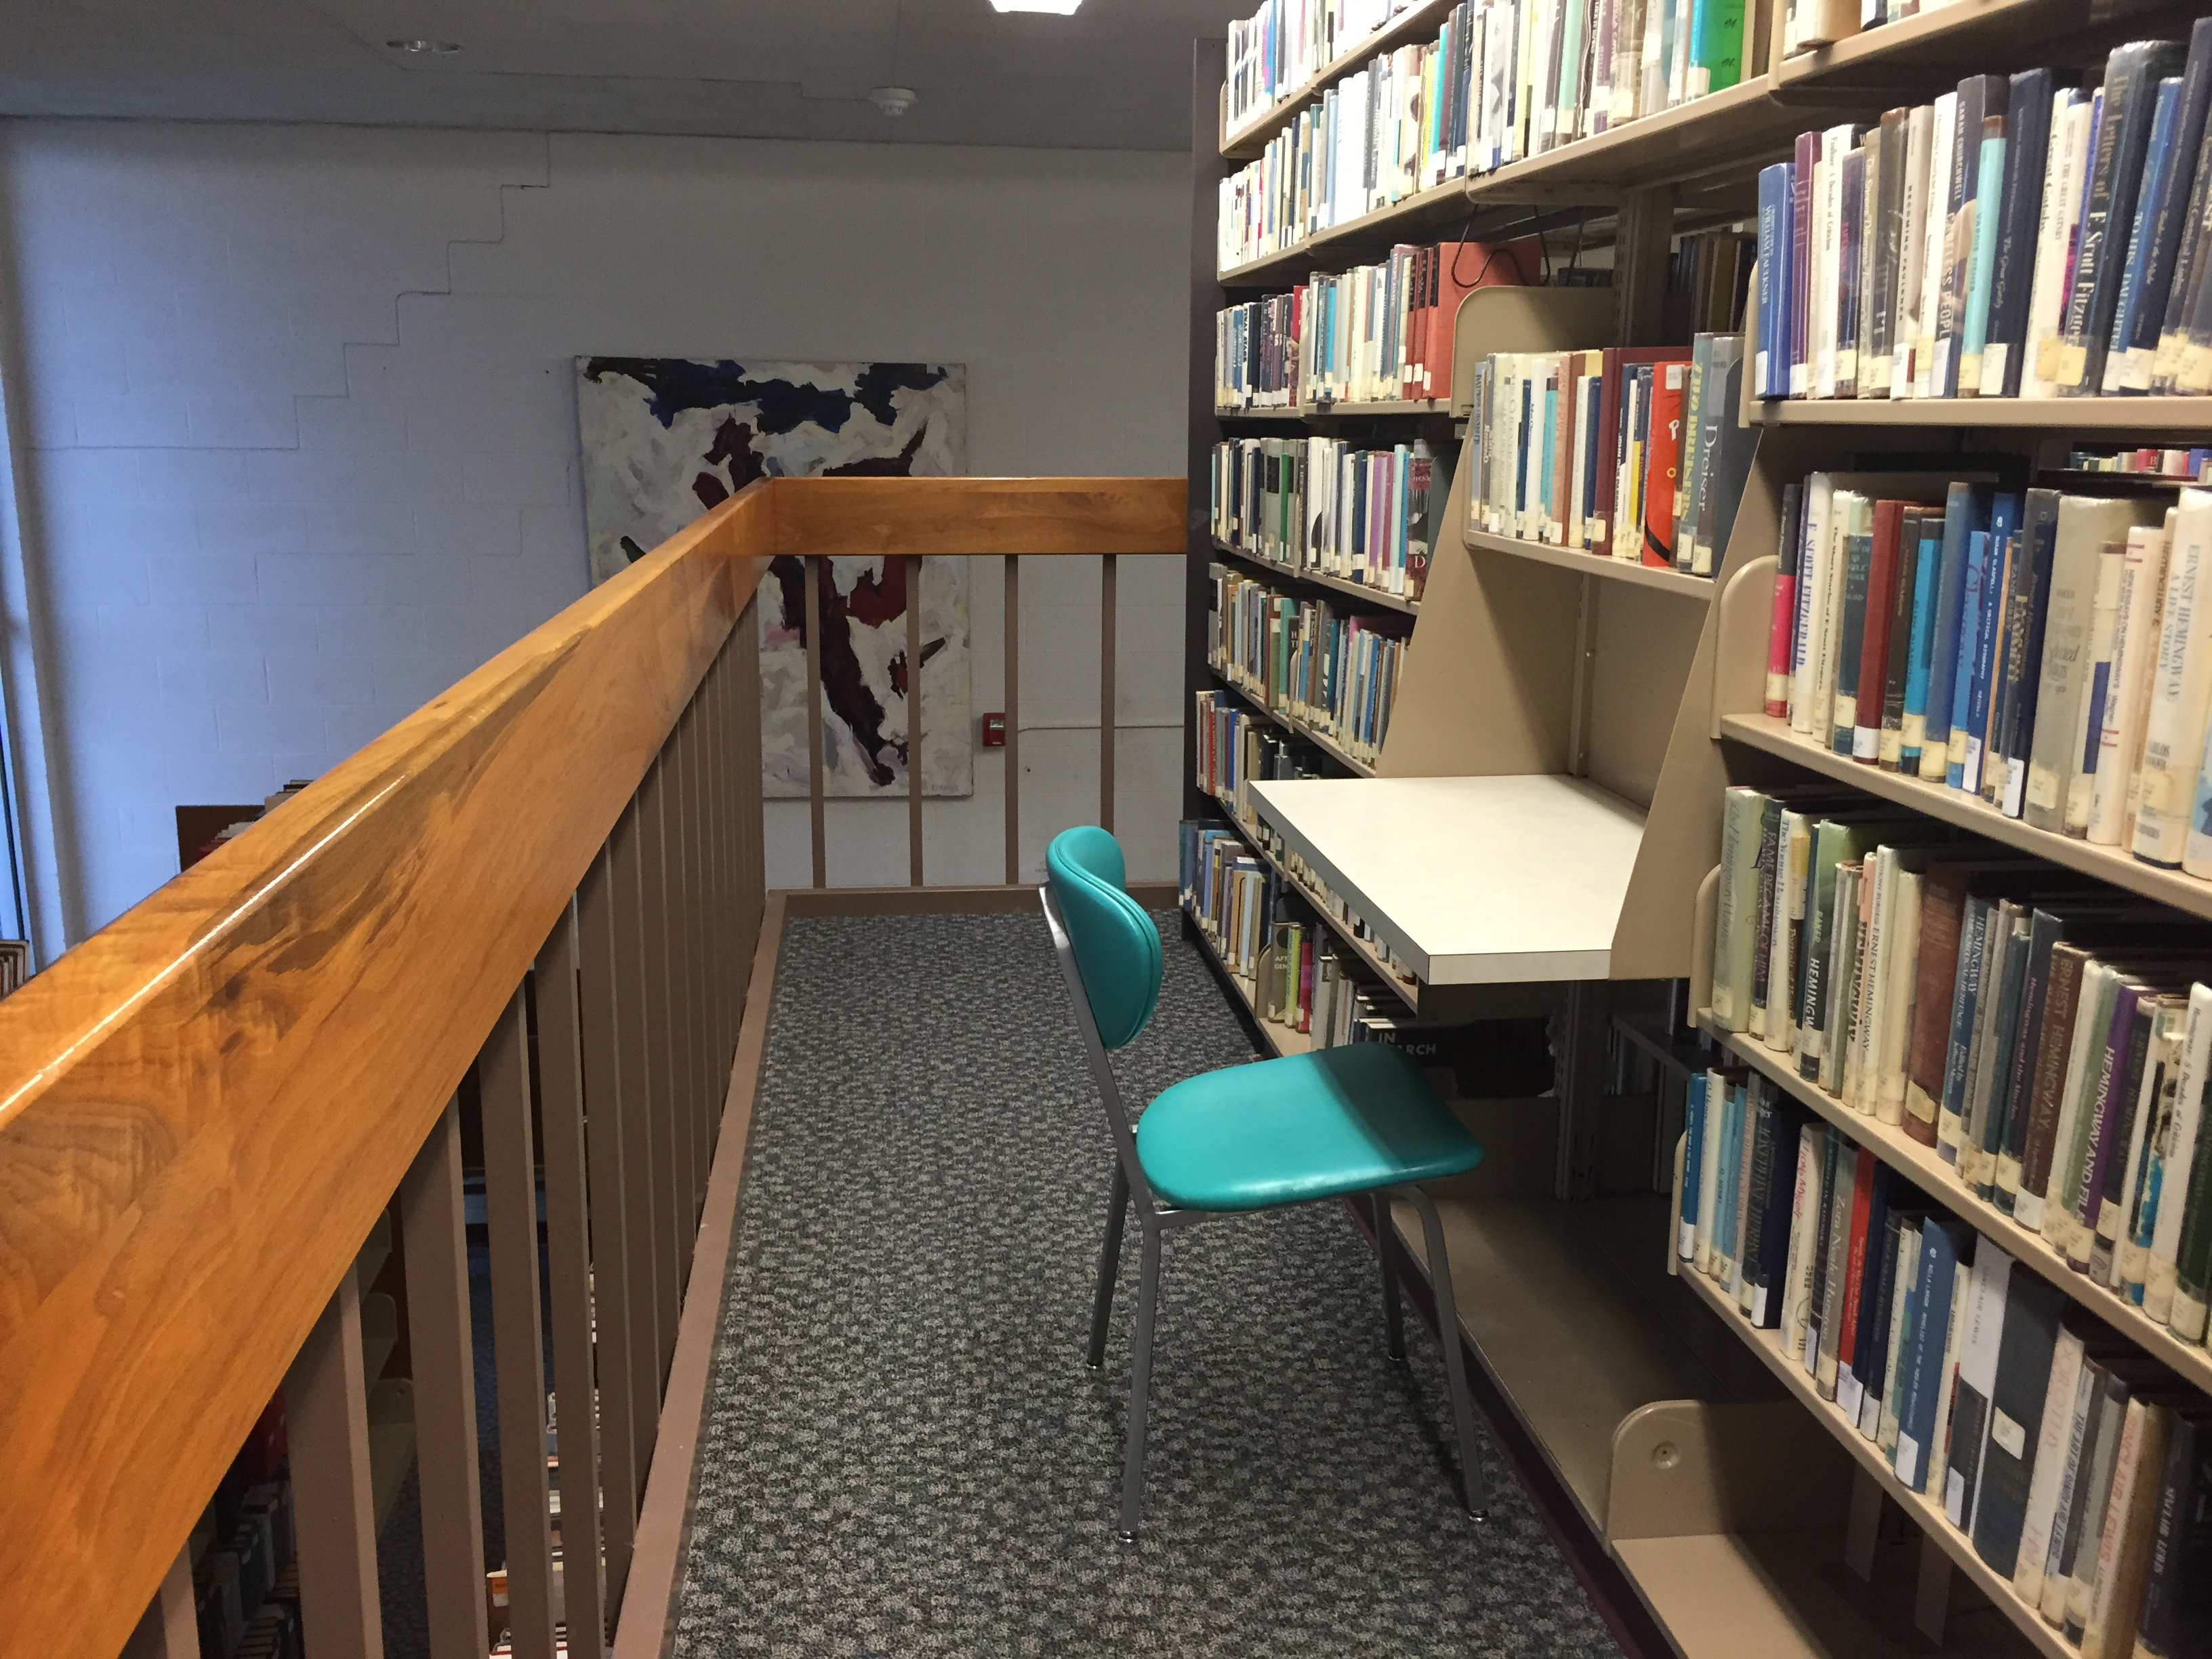 Private study area within the stacks